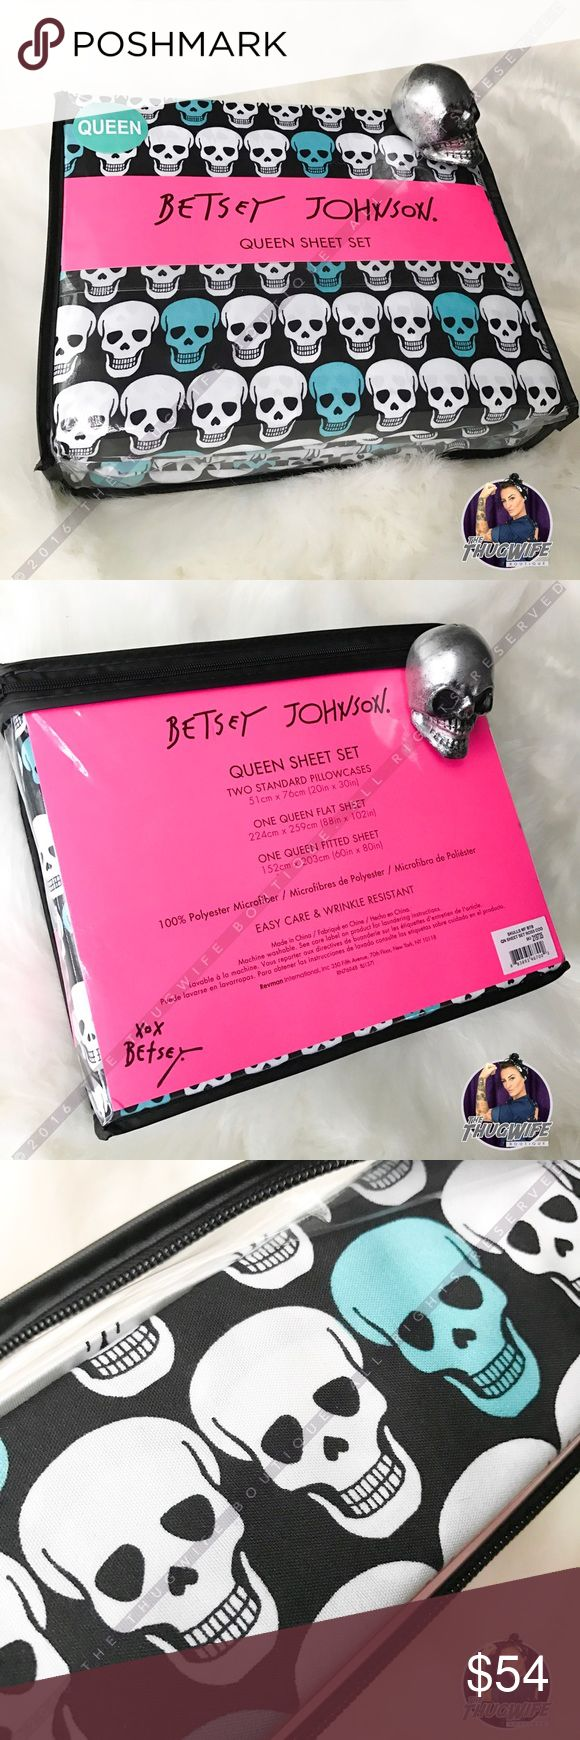 Betsey Johnson blue skull bed sheet set NEW WITH TAGS    SKULL LOVERS !  I personally have these on my bed and they are so incredibly soft ! Vibrant color .  Two pillow cases , one fitted sheet , one flat sheet .     Use the OFFER BUTTON • bundle for 10% off       🤗 please no drama ladies lets be nice 🤗    • 5 star rating • over 300 sales • smoke free home • 100% authentic • packedtokill •         |💀| www.thethugwife.com |💀|            🚫 🙅🏻 N O   TRADES 🙅🏻 🚫 Betsey Johnson Other